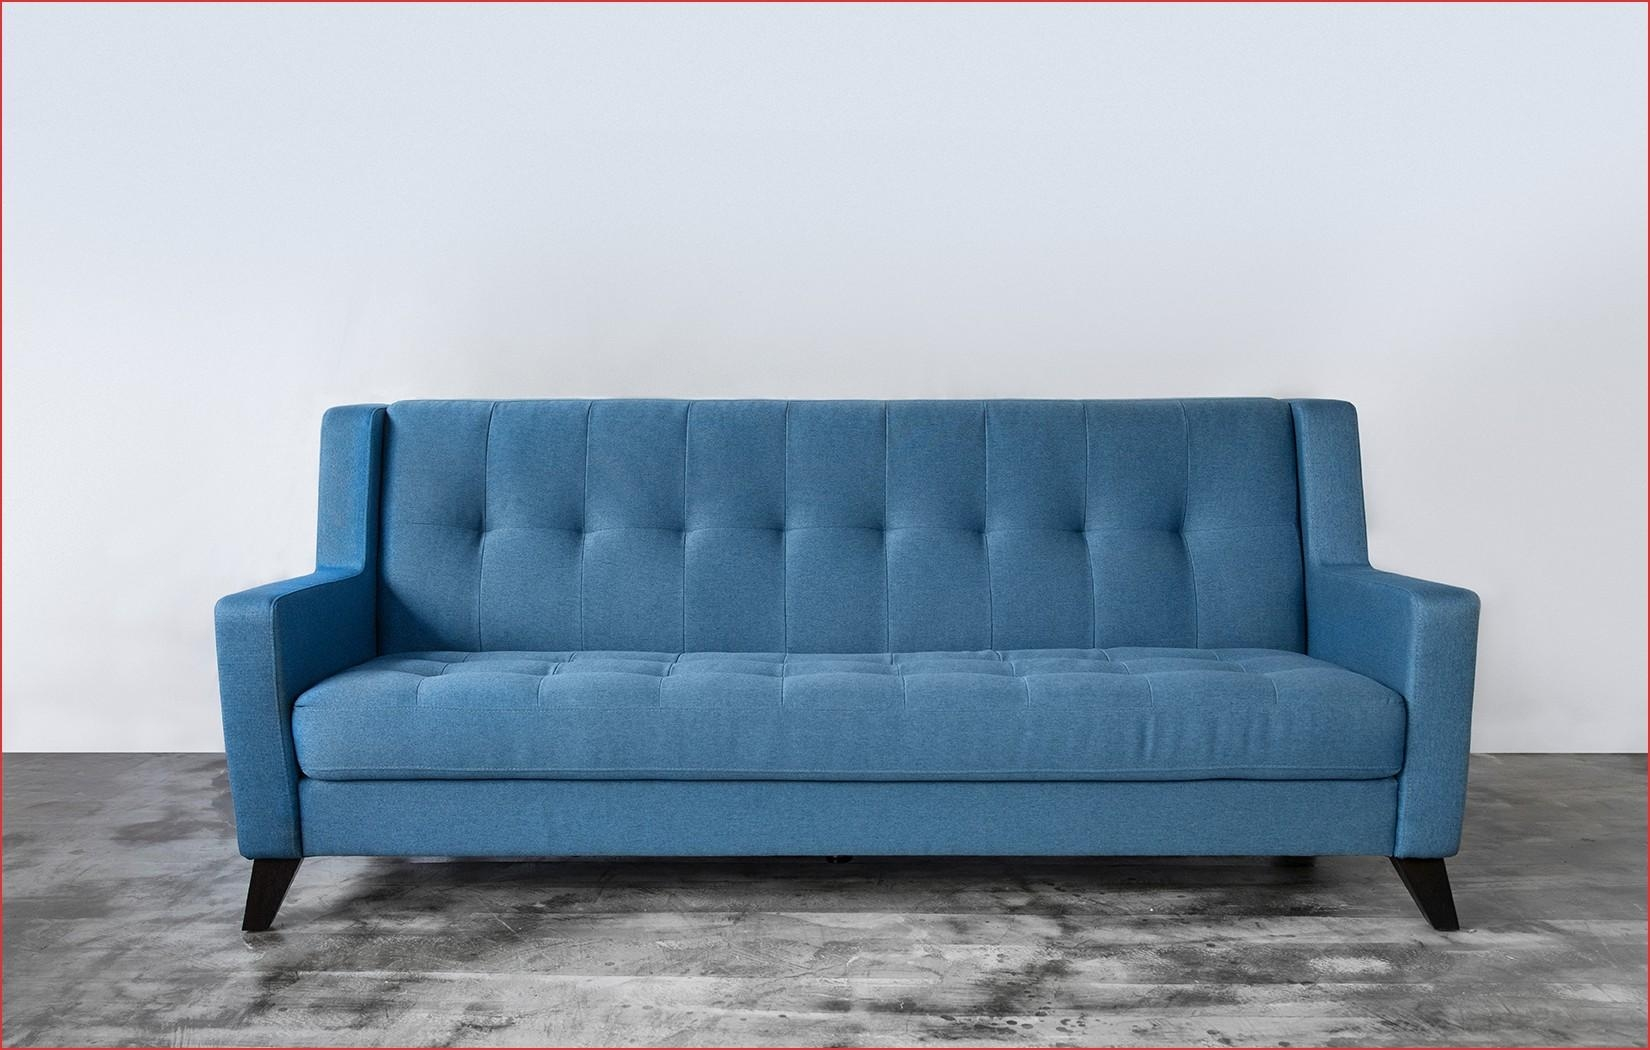 Sofas With Removable Covers Lovely Greyhammer Furniture Architect Within Sofas With Removable Covers (Image 16 of 20)